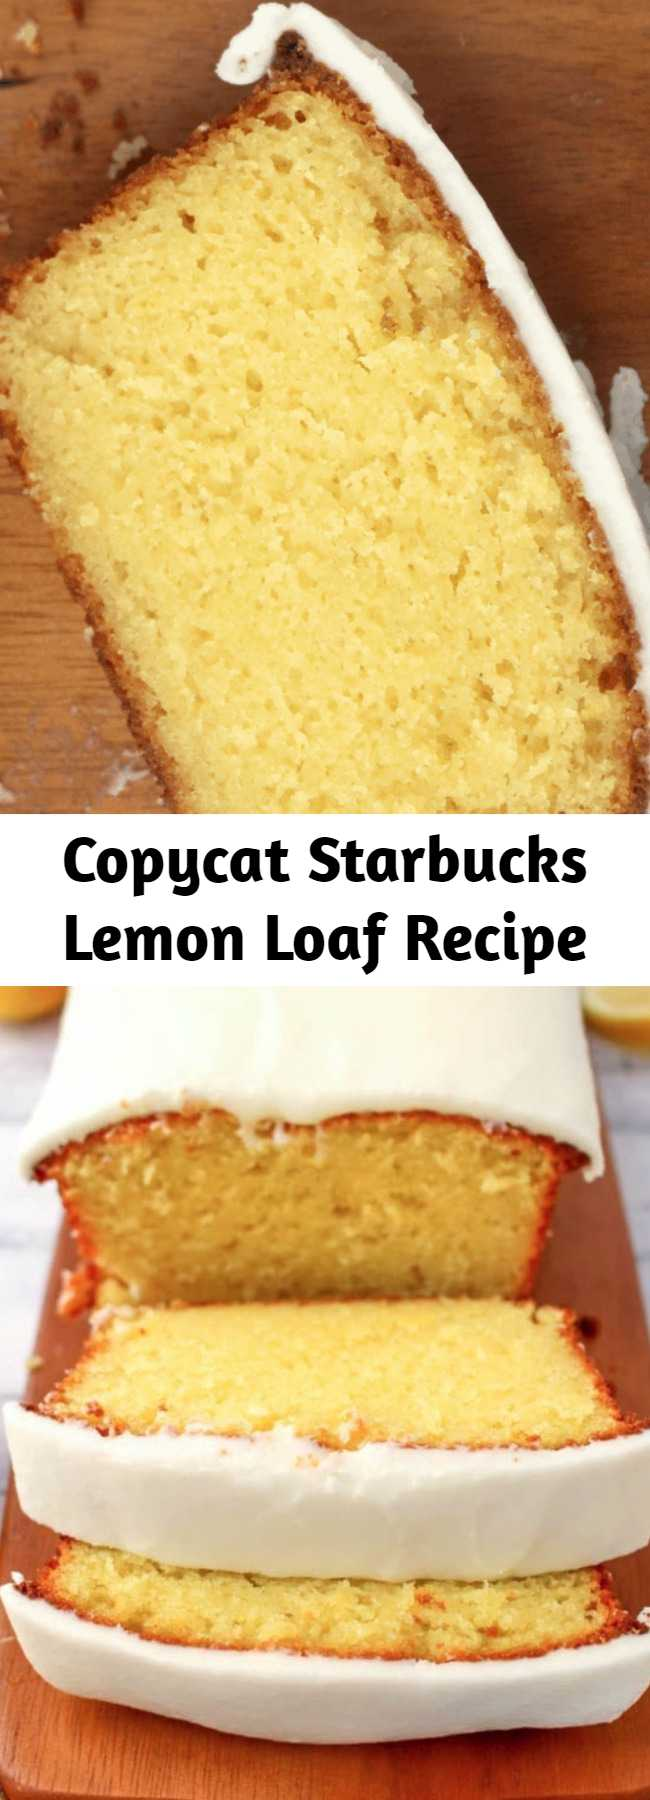 Copycat Starbucks Lemon Loaf Recipe - If you like Starbucks Lemon Loaf, then you'll love this moist, delicious Lemon cake! This easy to make recipe is loaded with delicious lemon flavor, and topped with an amazing lemon frosting.